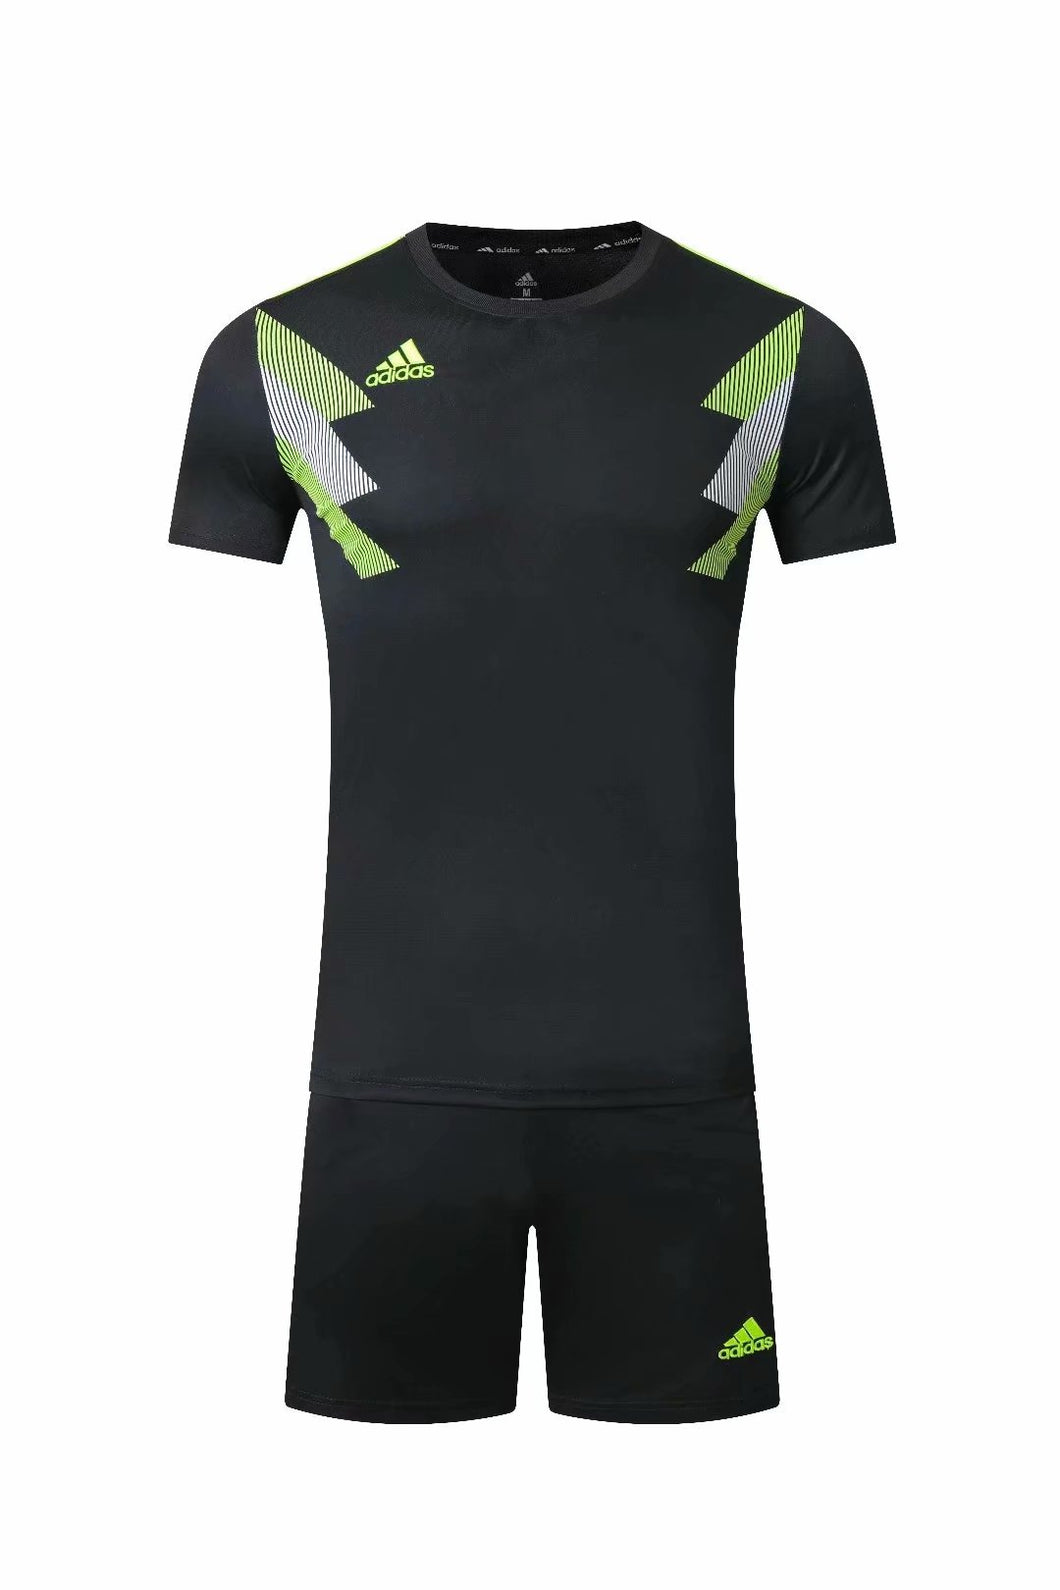 Adidas Full Football Kit Adult Sizes only - Black with Yellow and White Chest Graphic